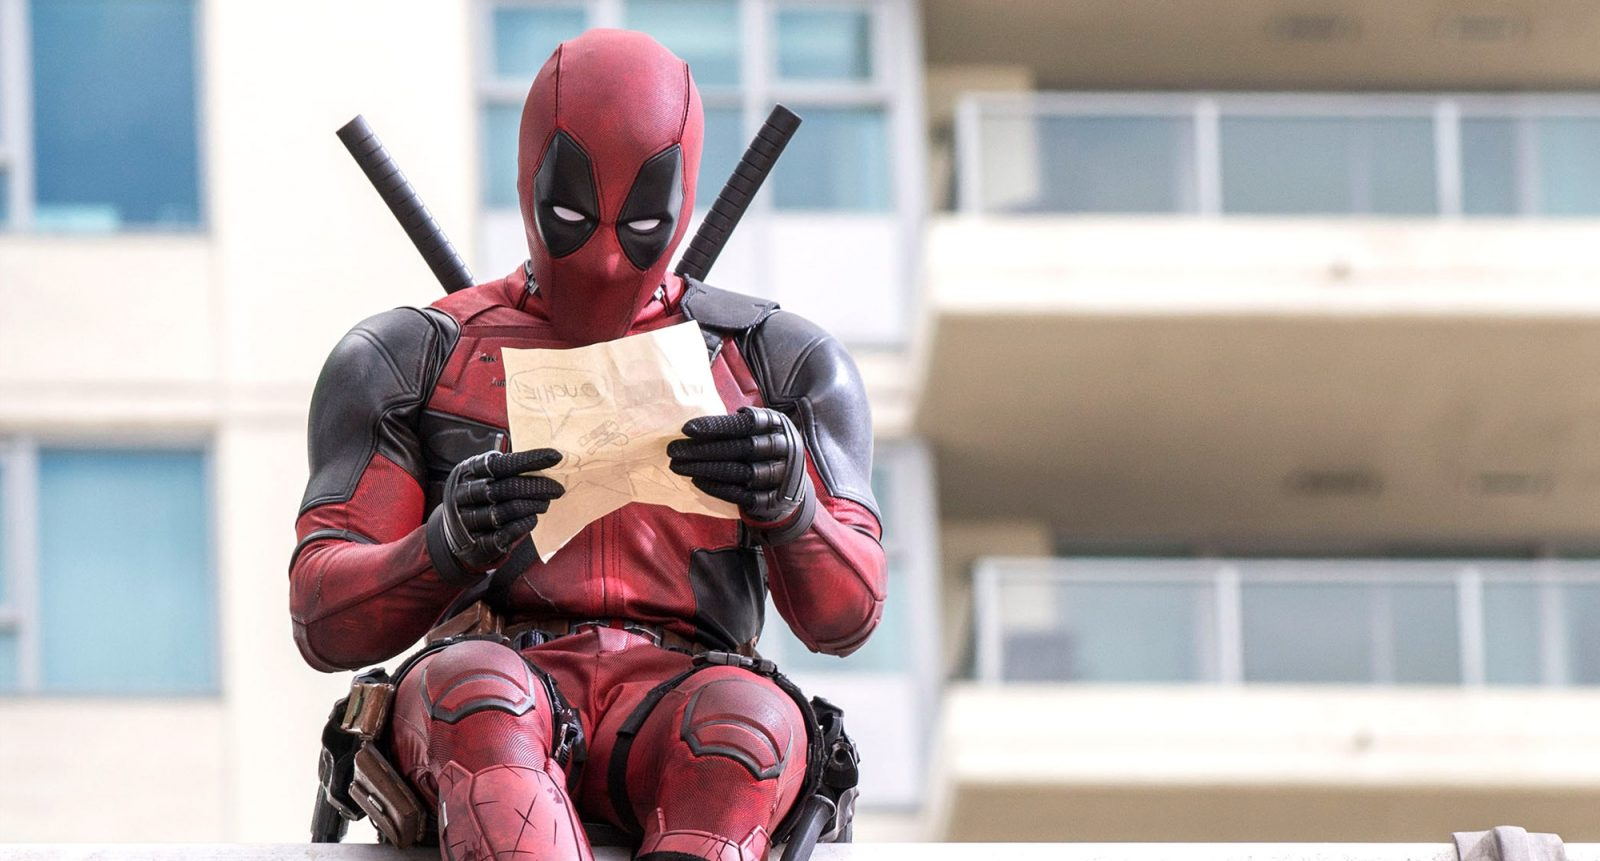 'Deadpool' Writers Discuss the Difficulties of a Wolverine Crossover Movie